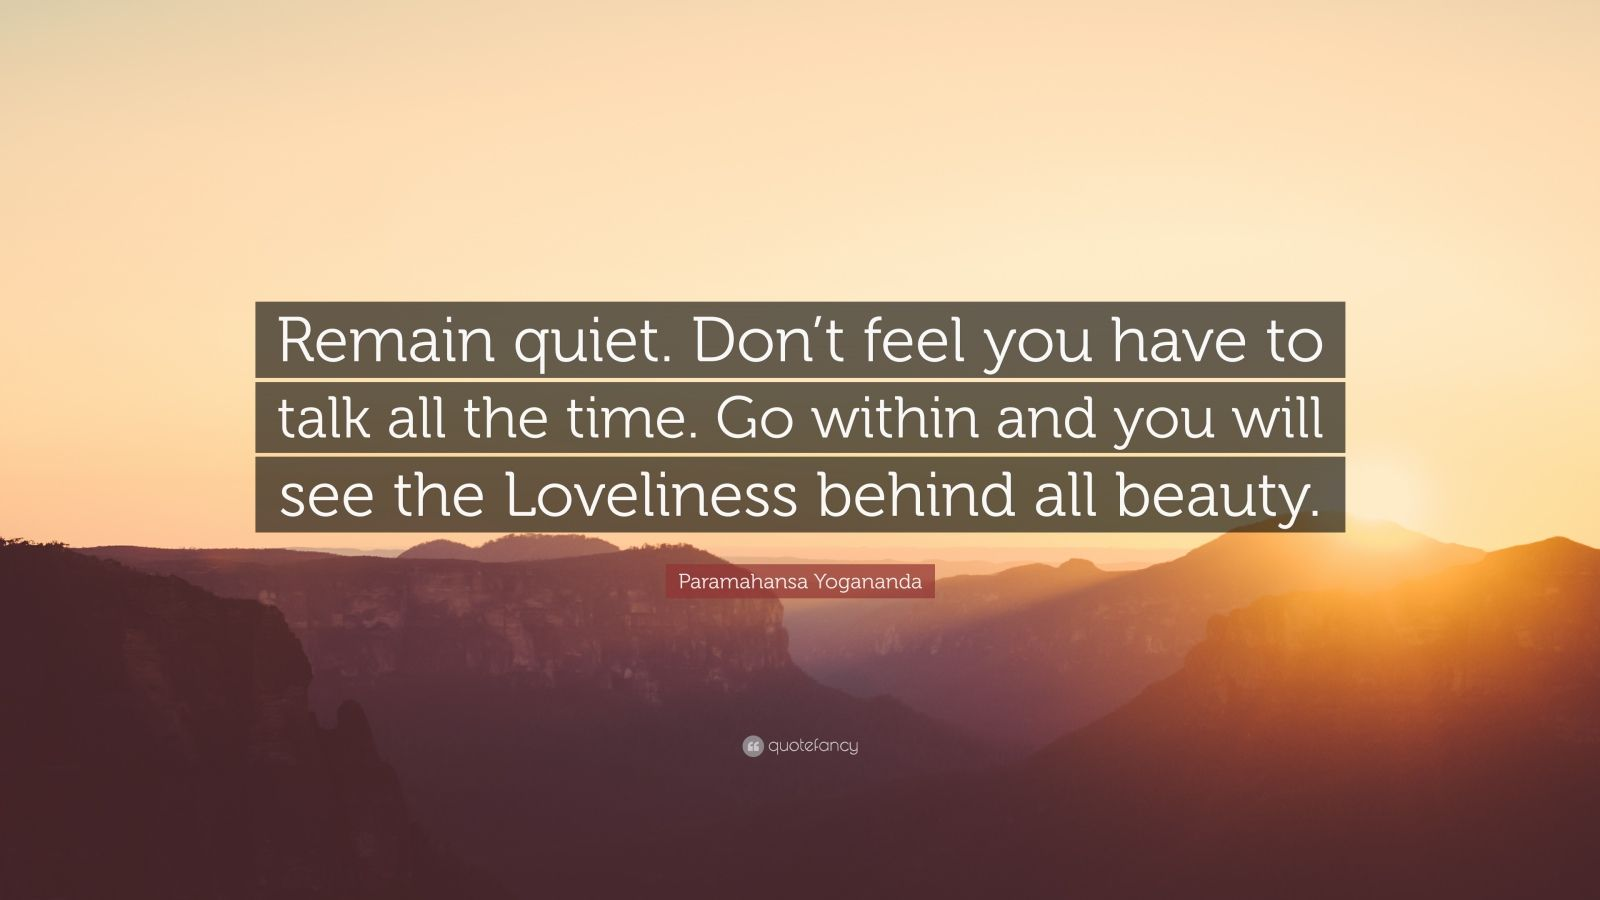 """Paramahansa Yogananda Quote: """"Remain quiet. Don't feel you have to talk all the time. Go within and you will see the Loveliness behind all beauty."""""""